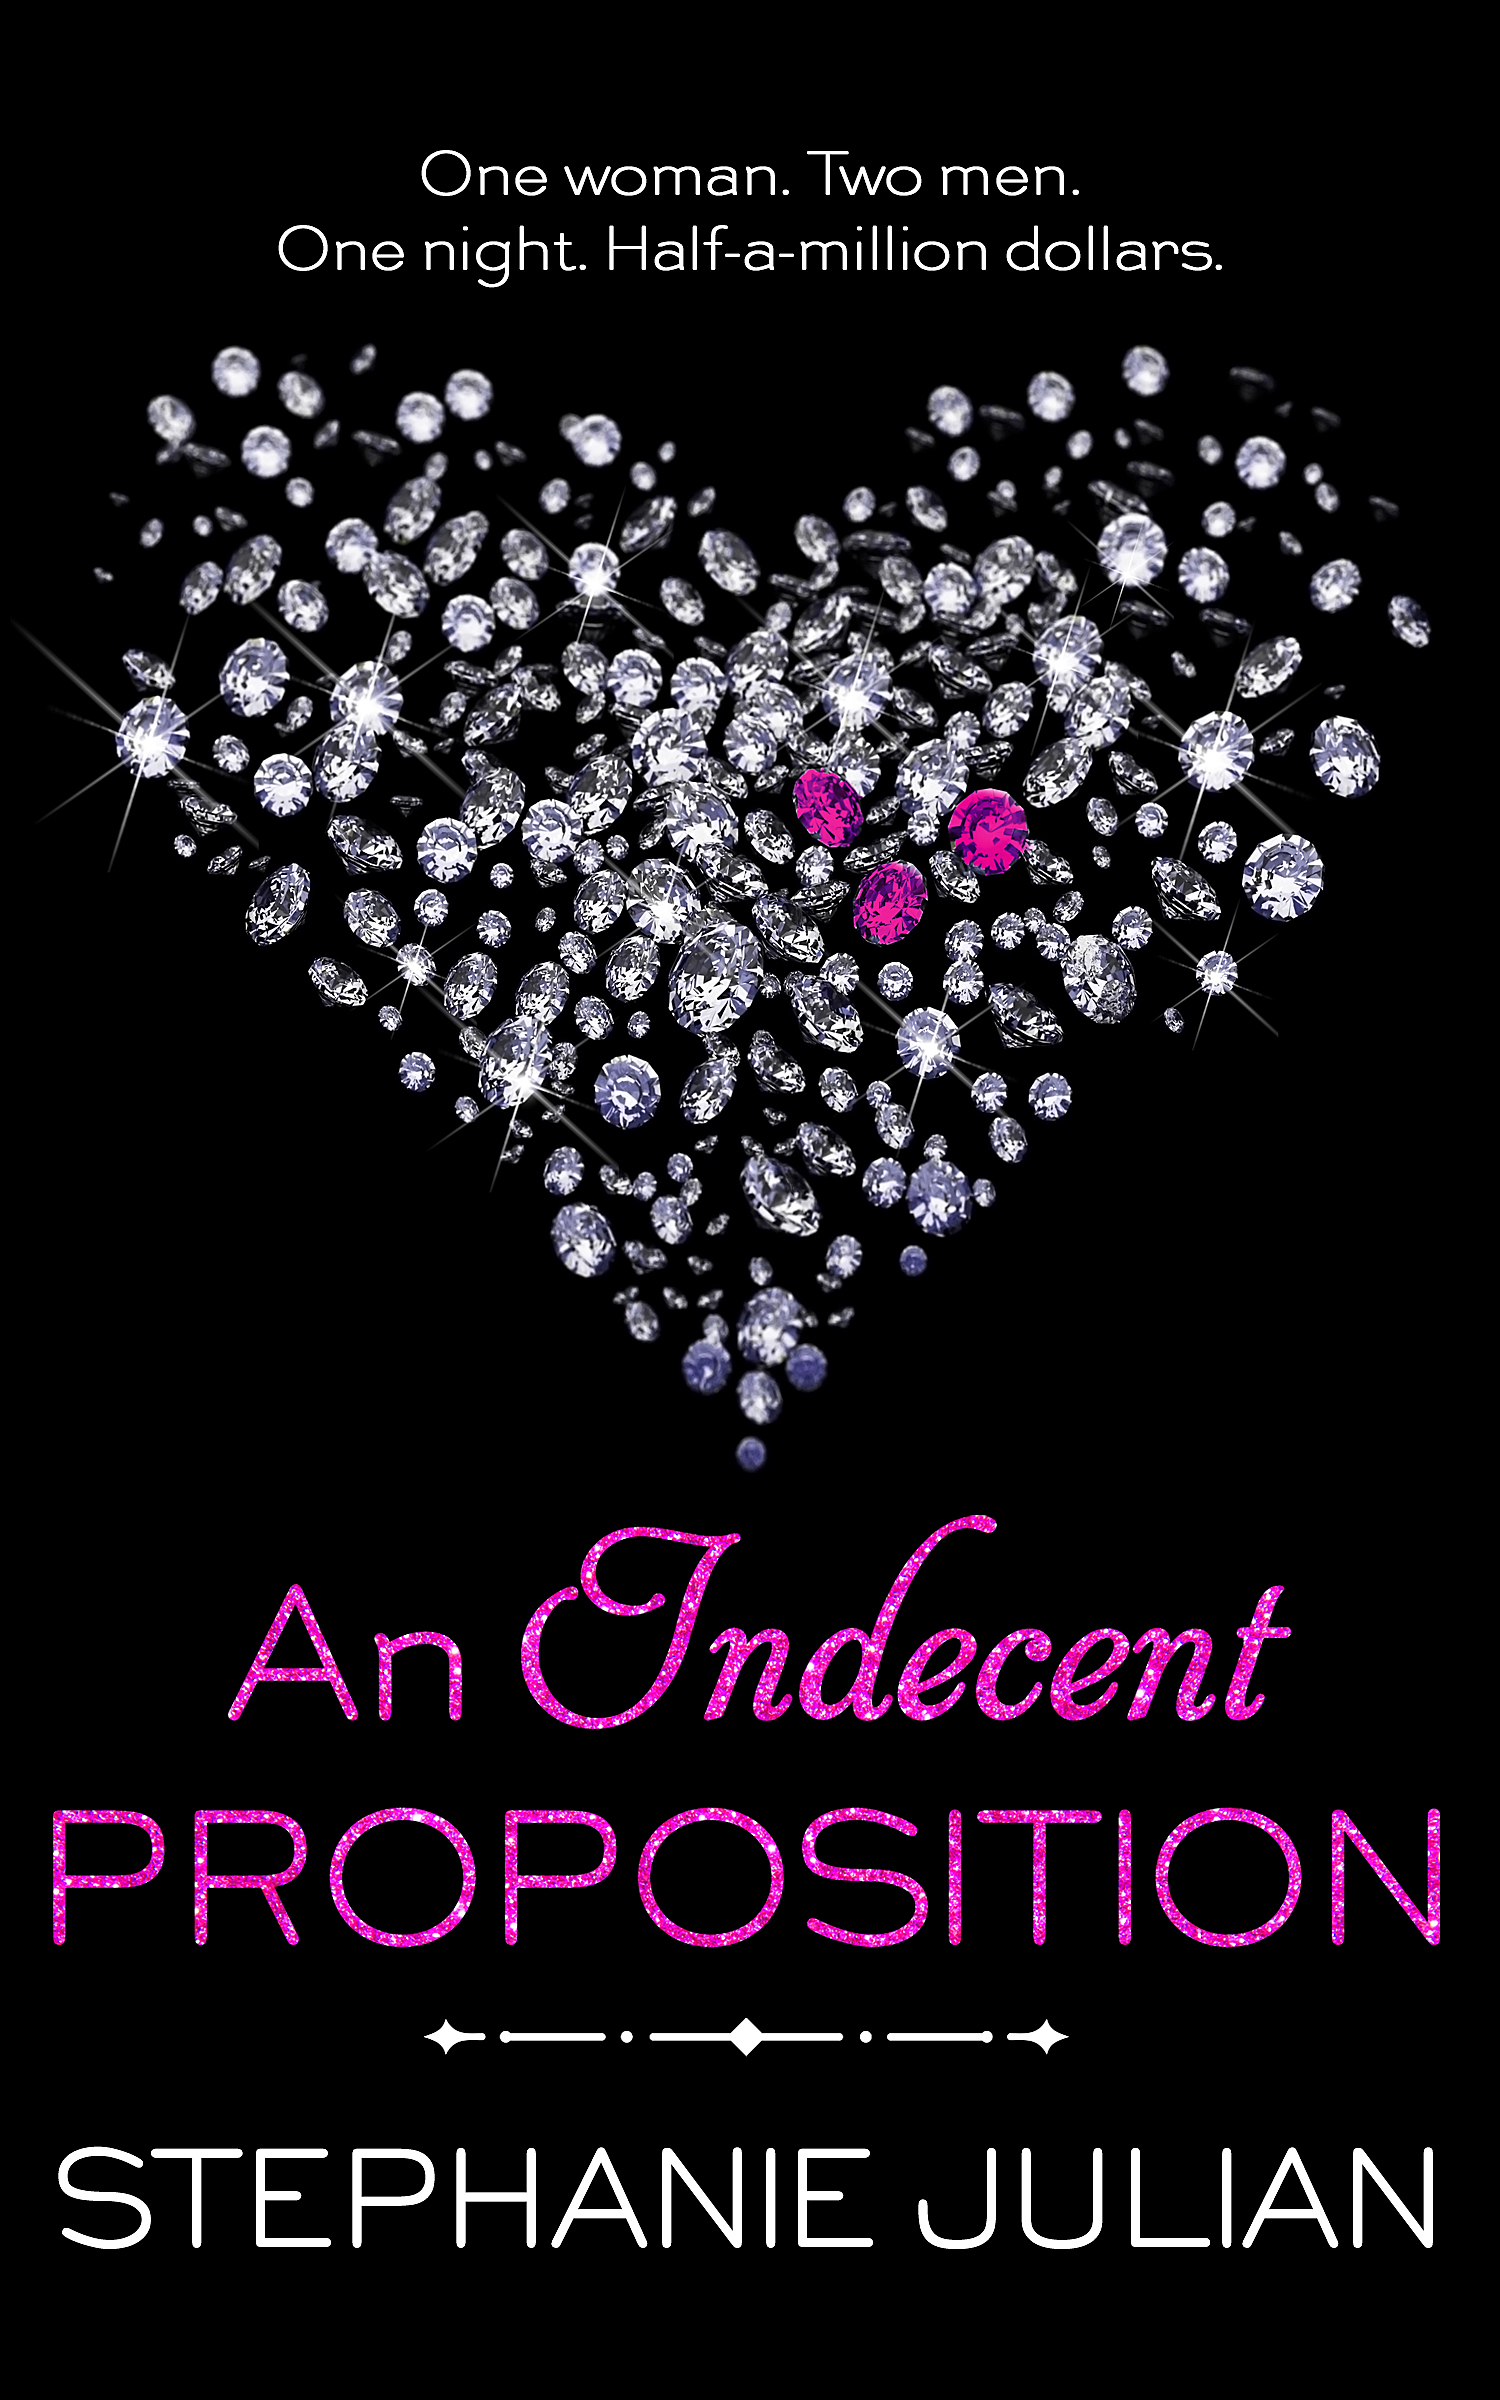 An Indecent Proposition (sst-cdxxxii)